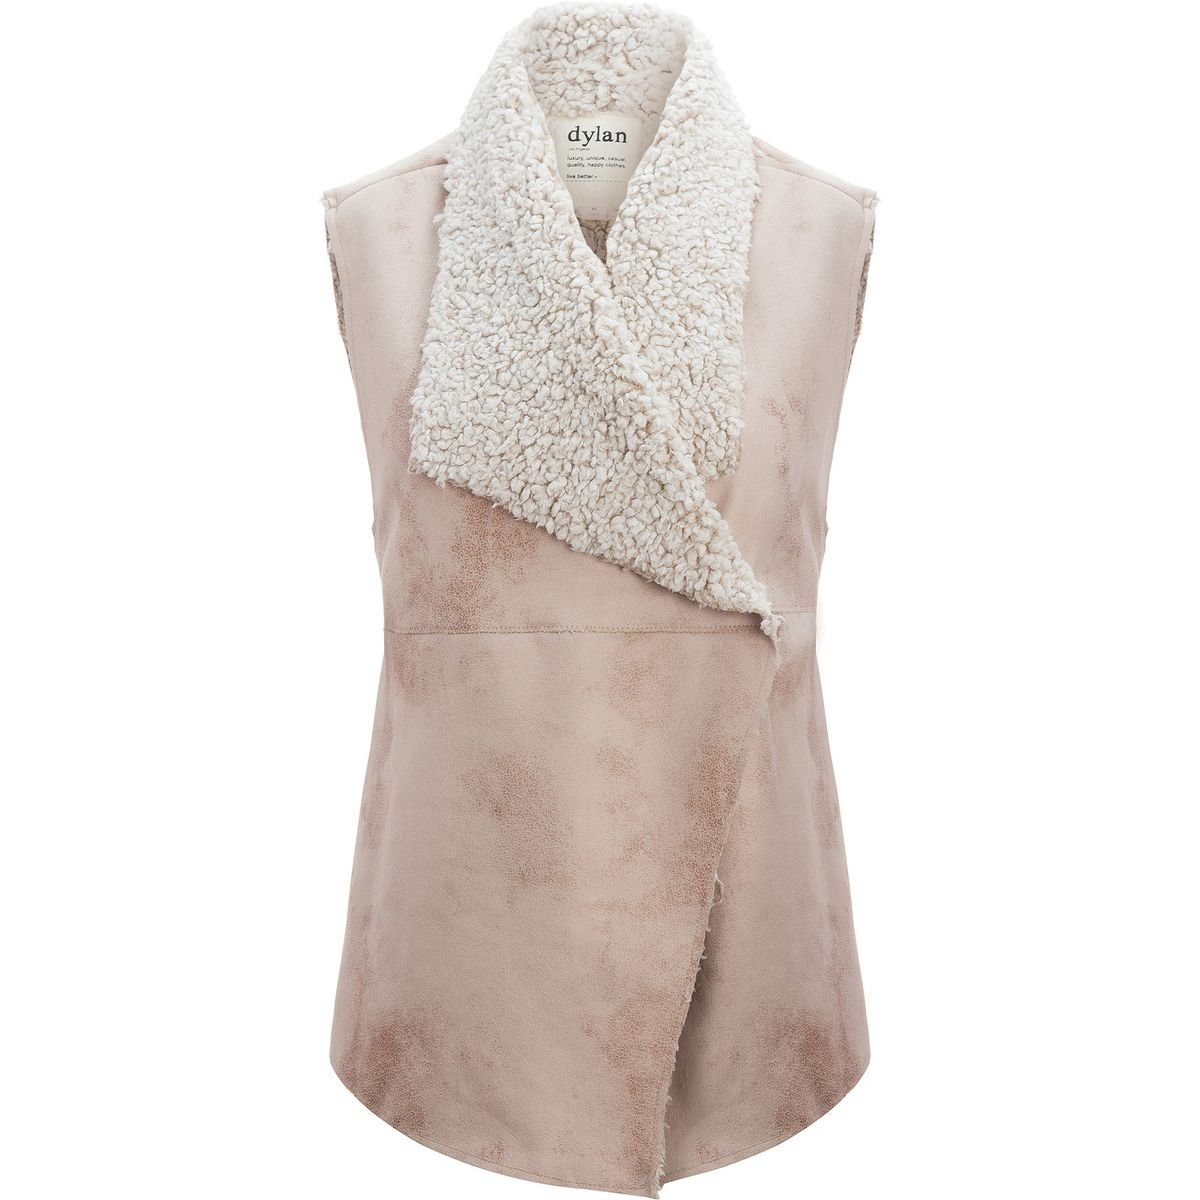 Dylan Frosty Tipped Shearling Snap Vest - Women's Natural, S